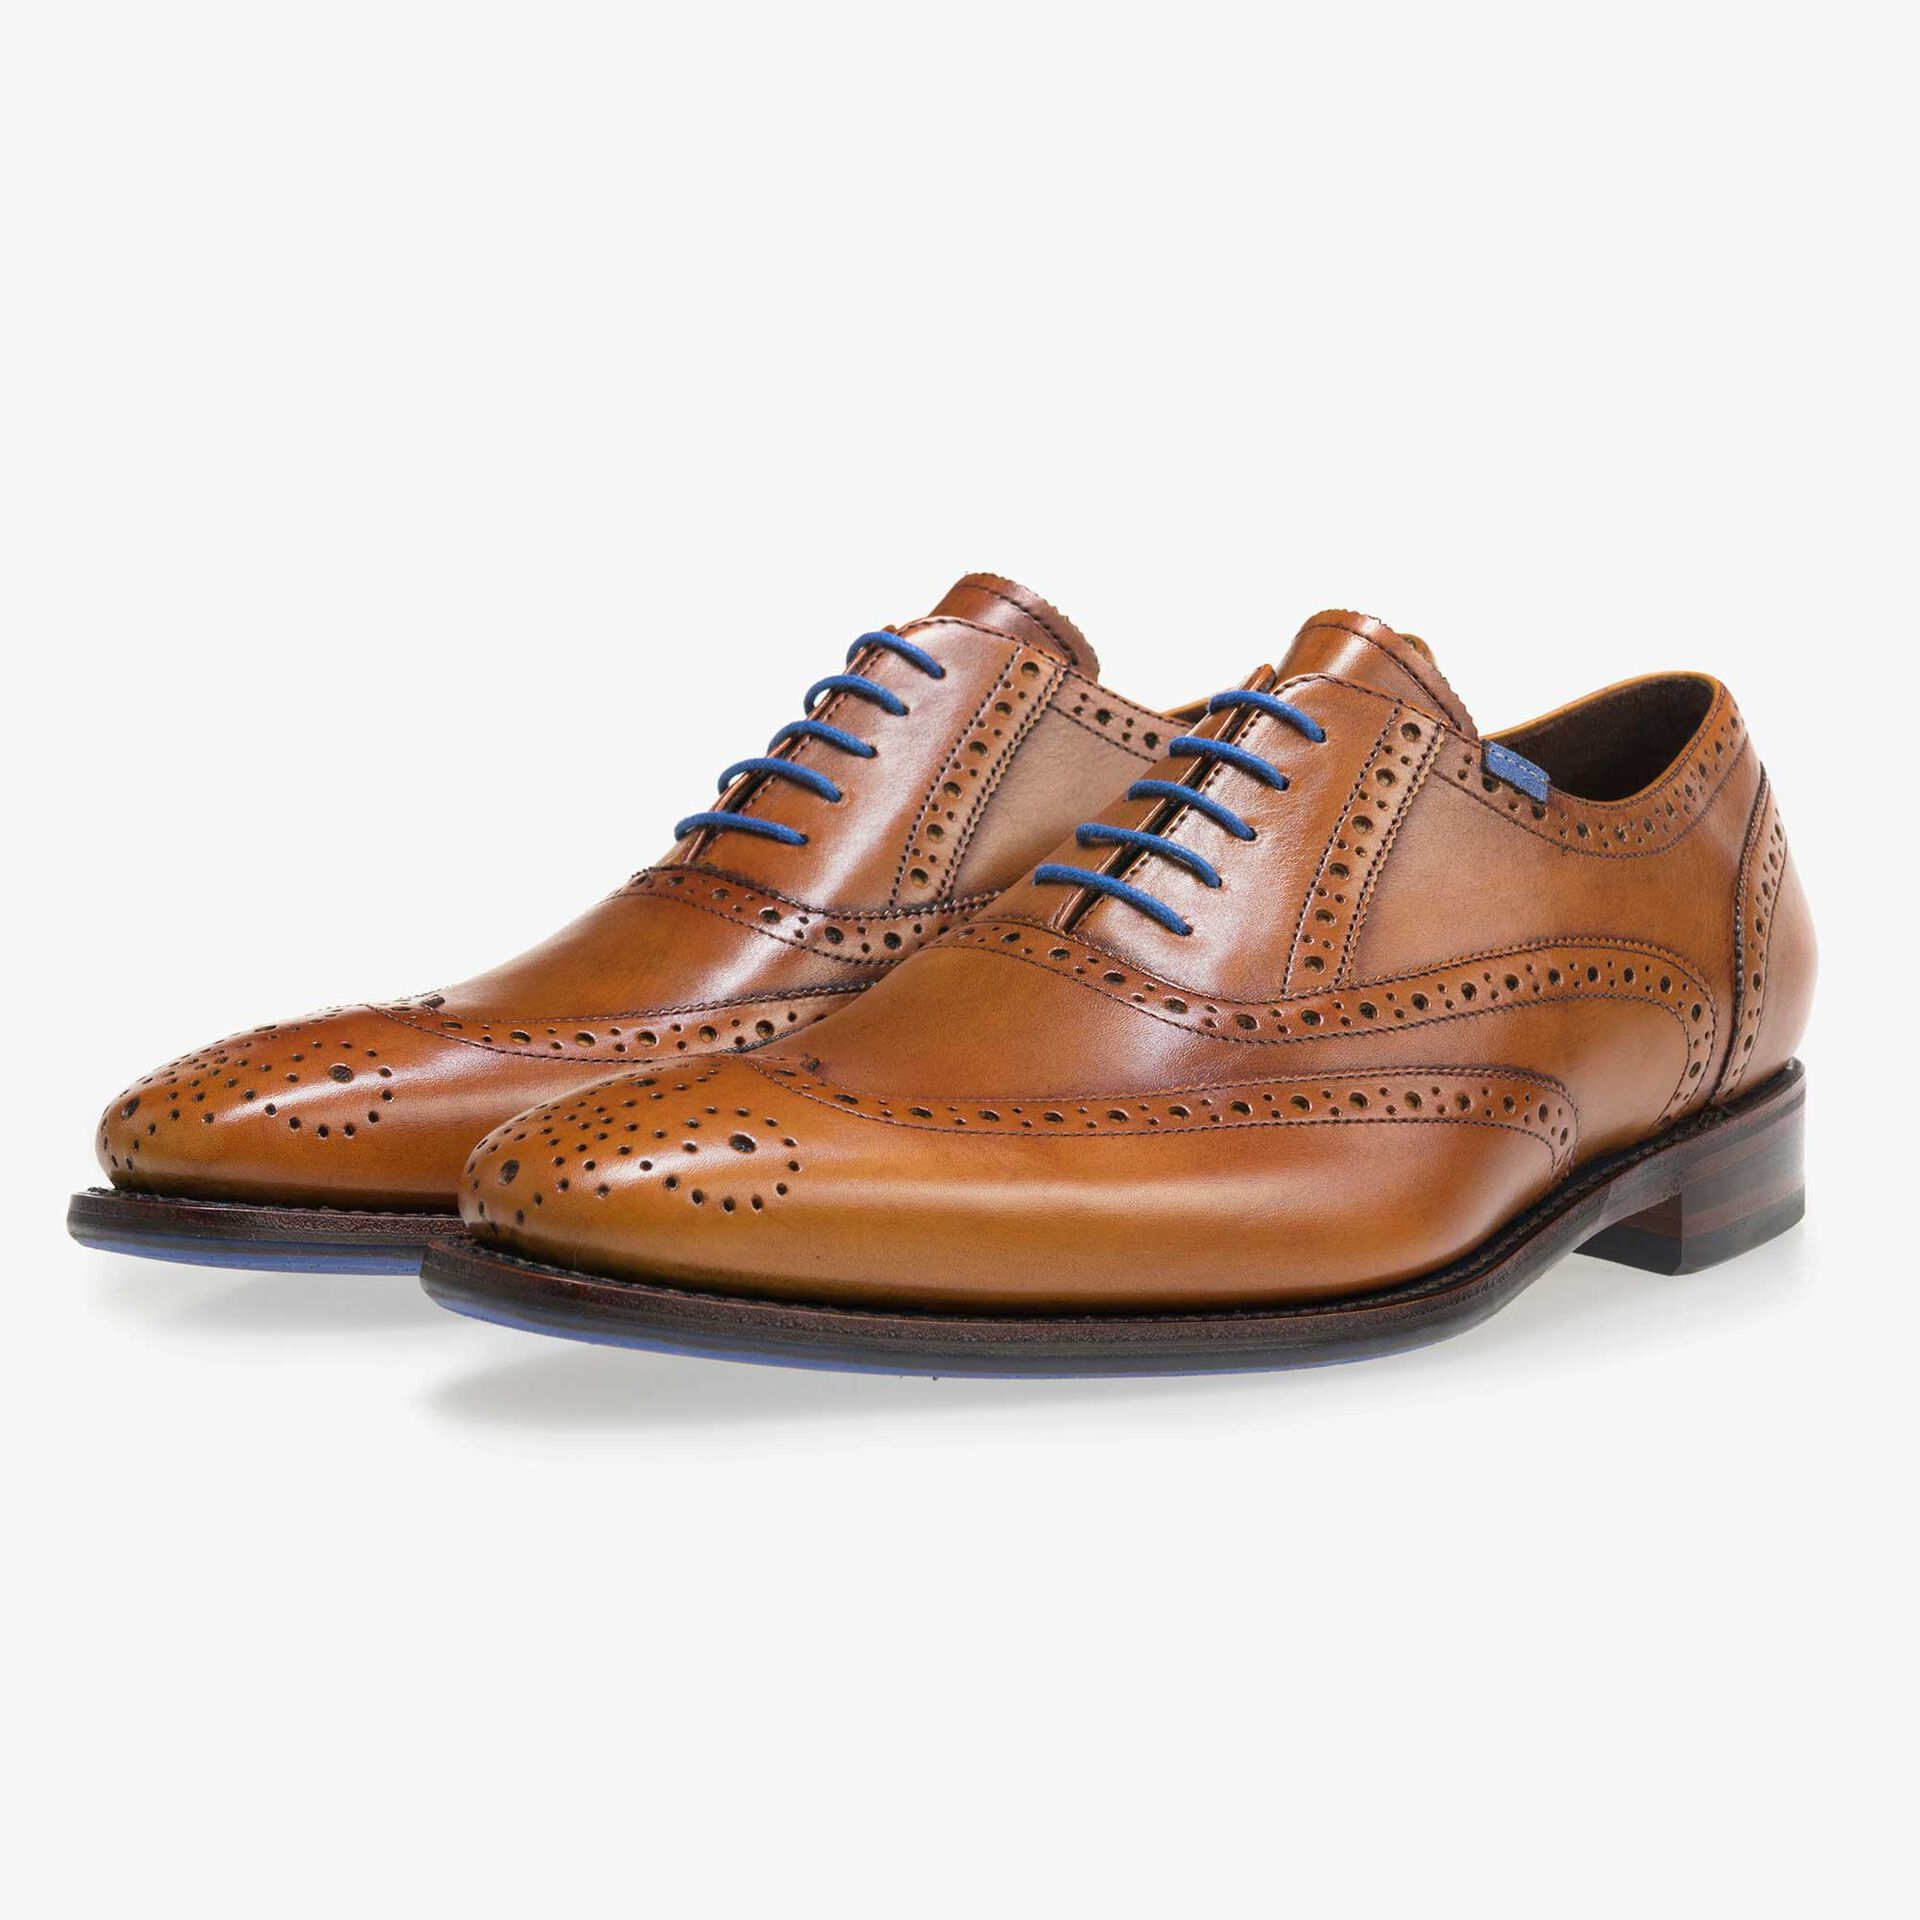 Cognac-coloured brogue calf's leather lace shoe